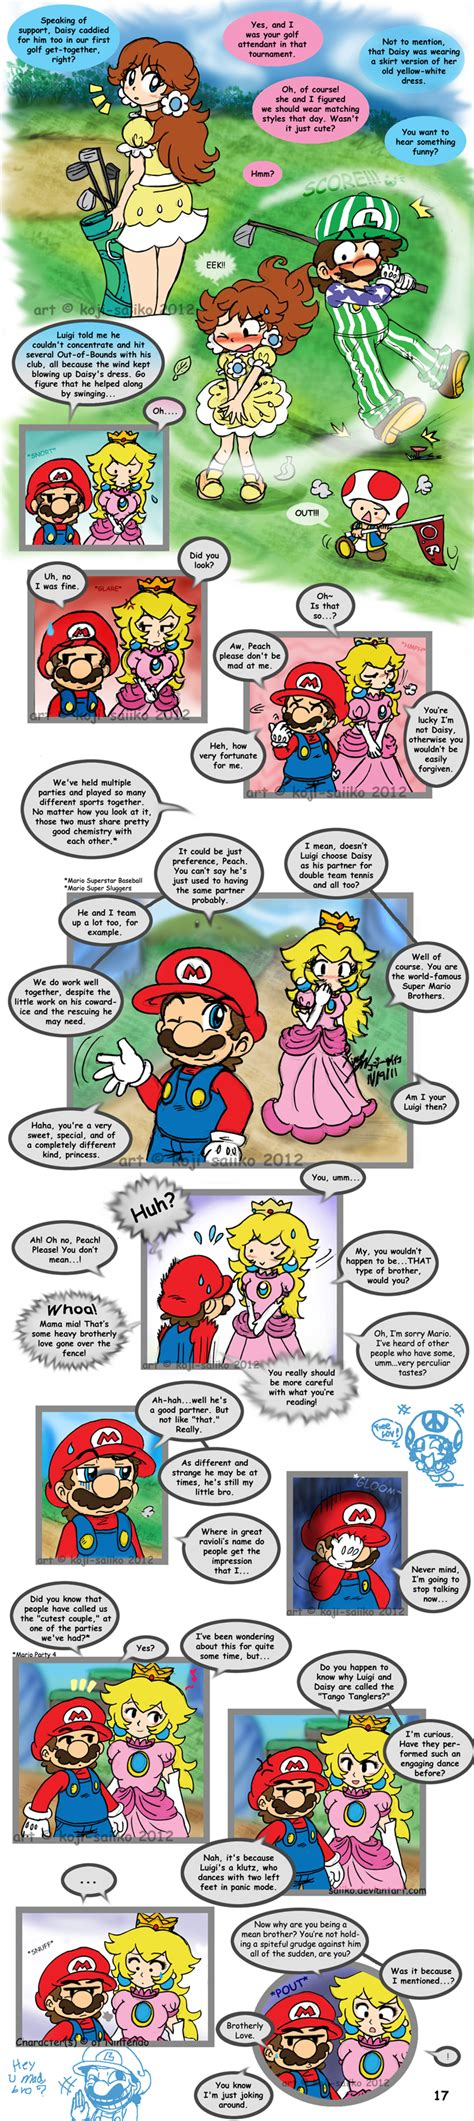 mario alone at home pg 17 end by saiiko on deviantart